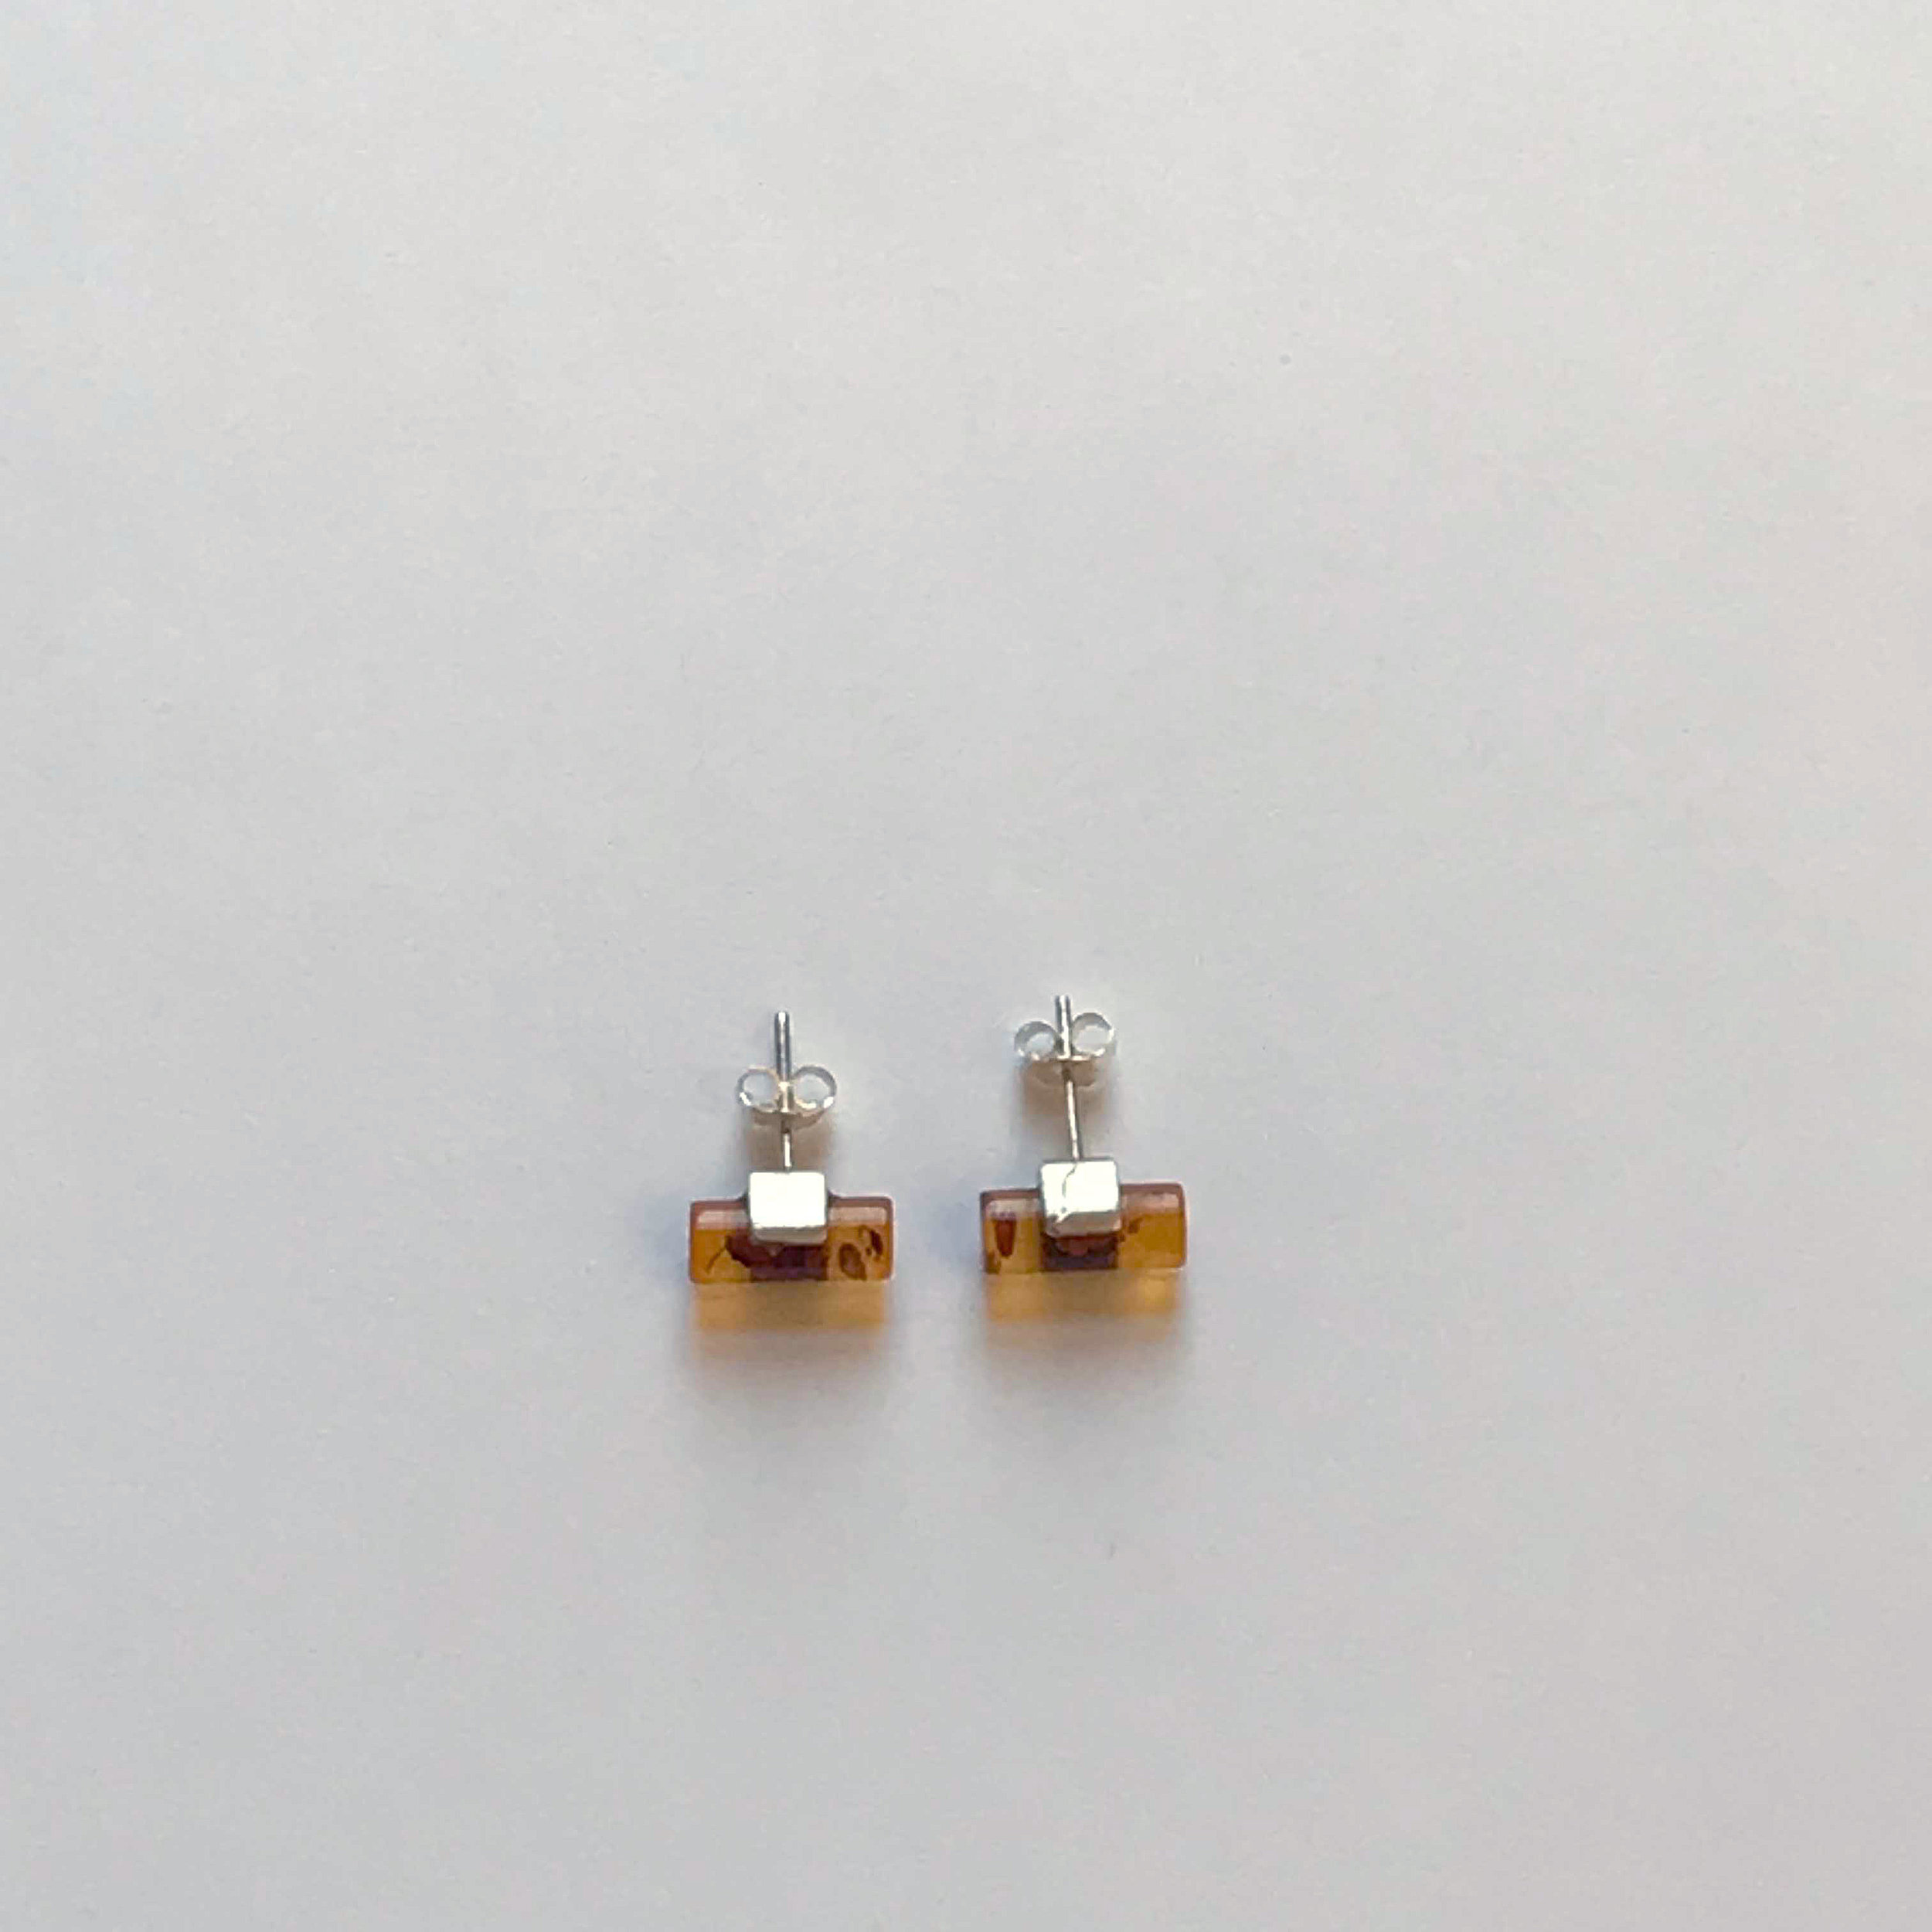 $75 Sterling Silver and Amber Stud Earrings